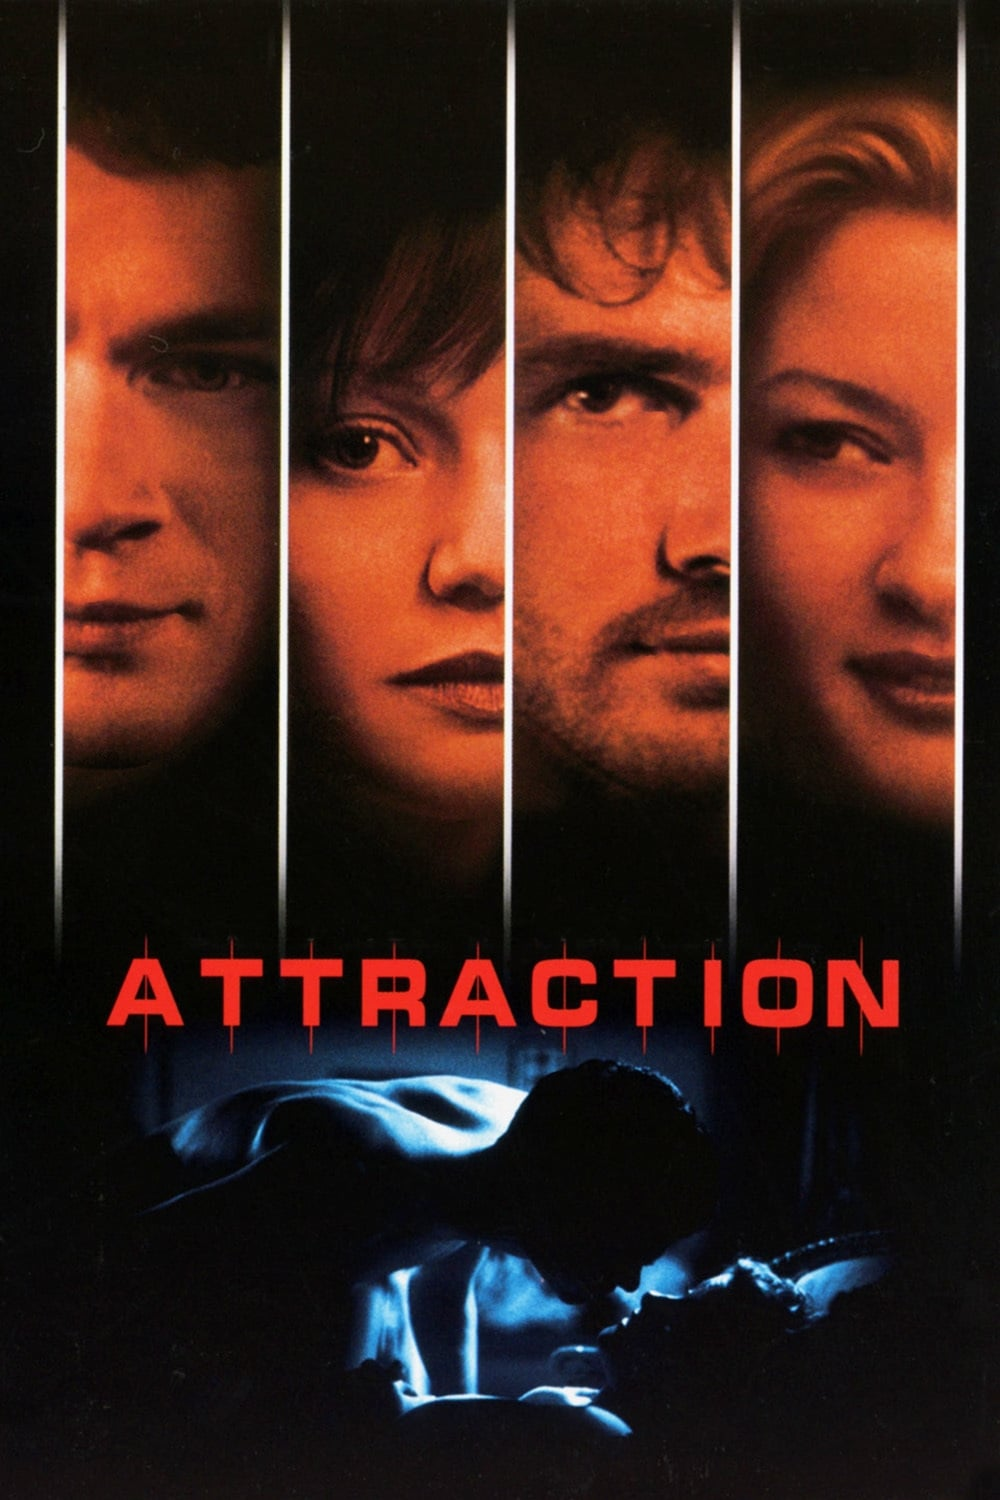 Attraction (2001)